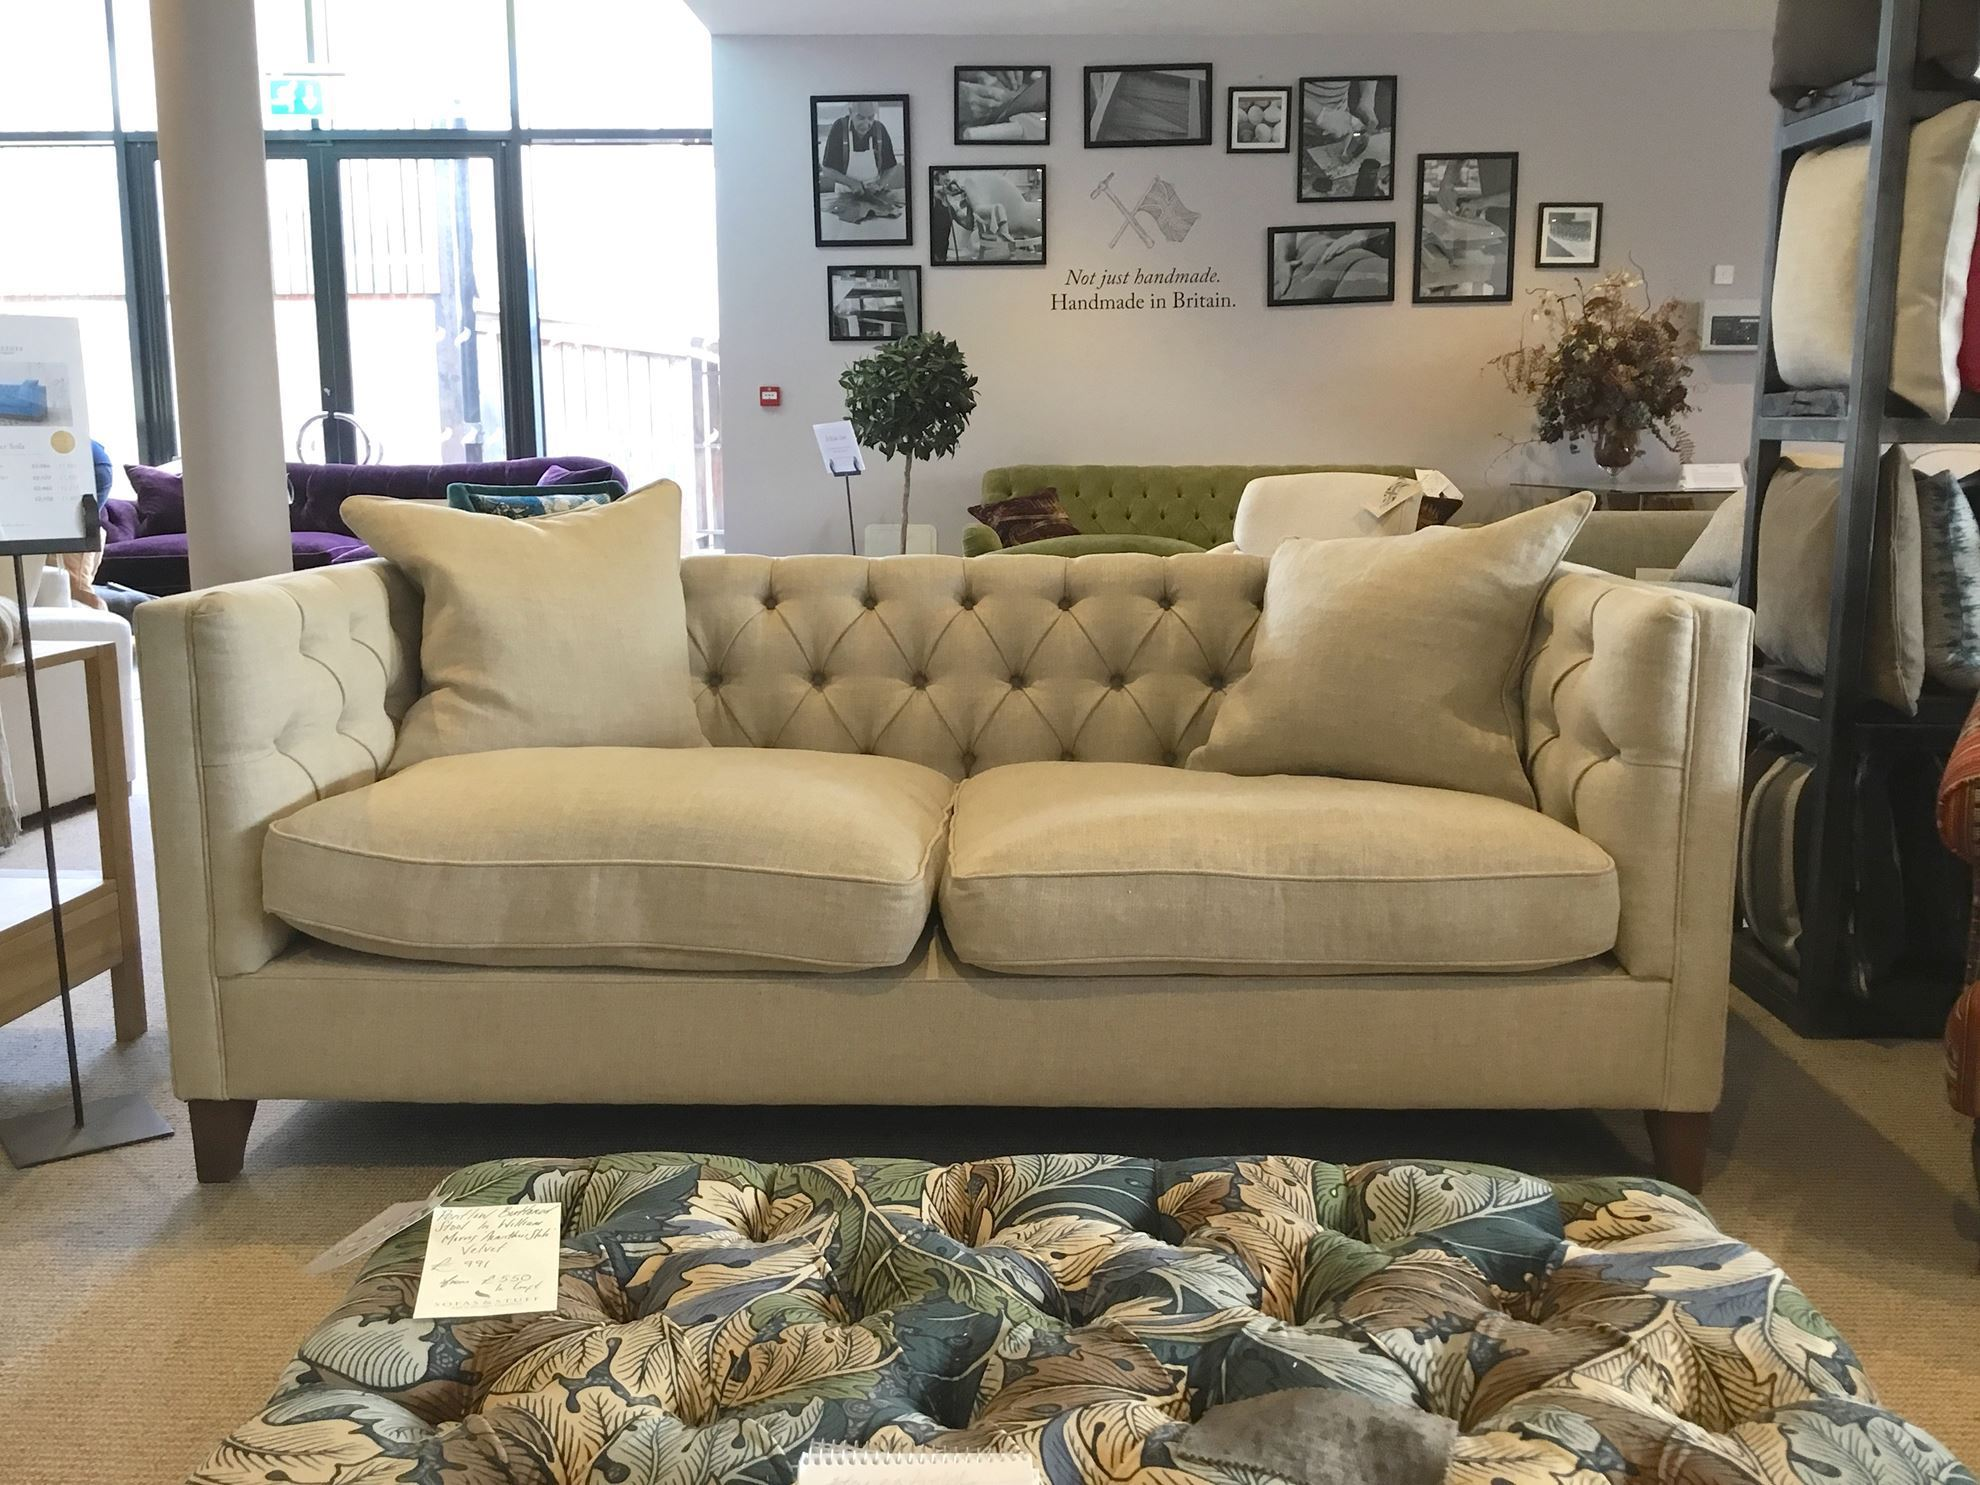 Sofas And Stuff Haresfield Haresfield Sofa In Sole Linen S S Clearance